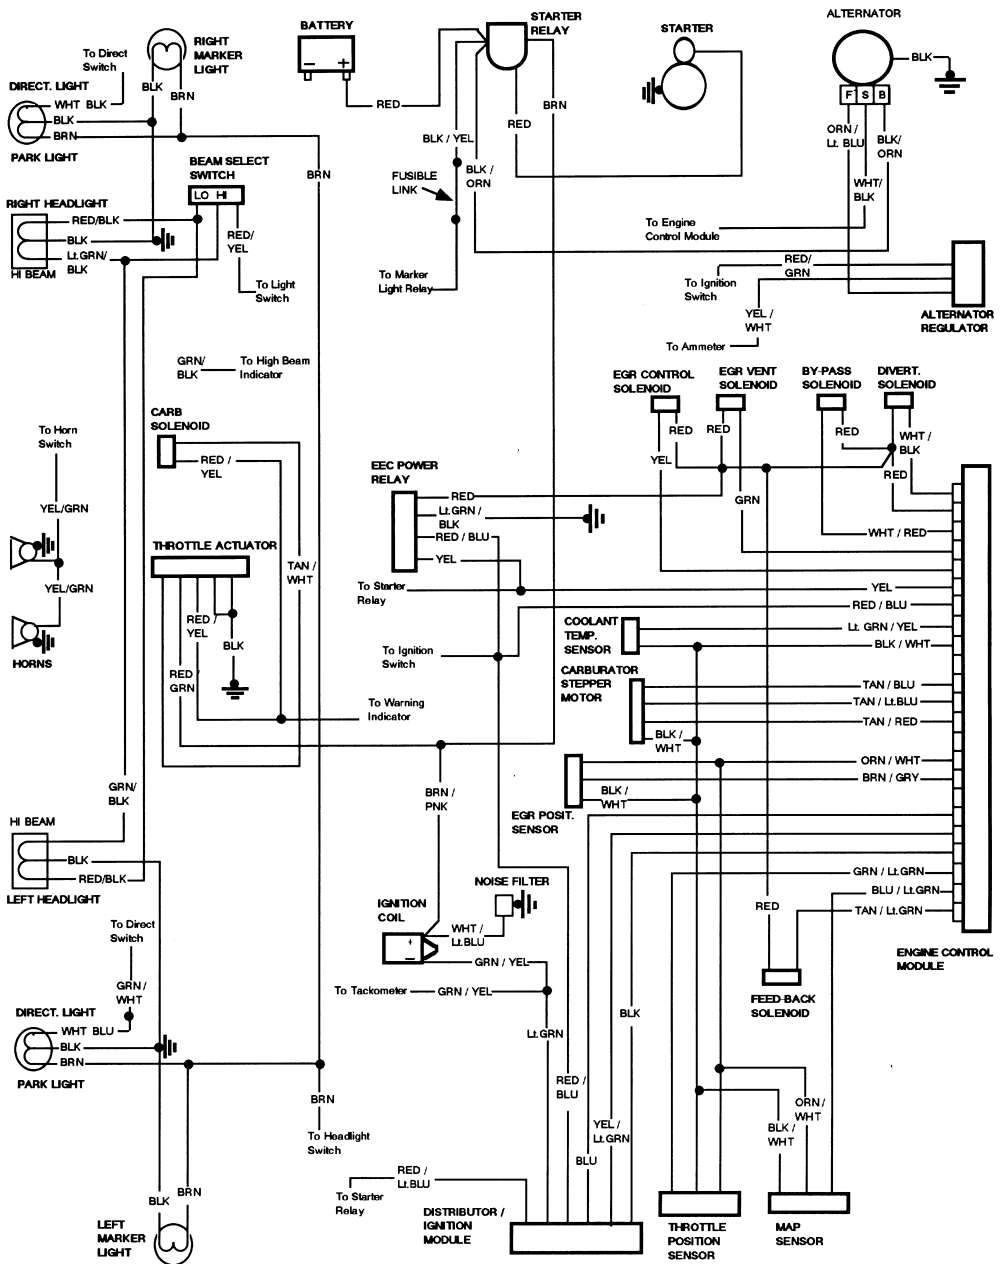 Wiring Diagram Cars Trucks. Wiring Diagram Cars Trucks. Truck Horn Wiring  Wiring Diagrams | Ford f150, Ford truck, Ford f250Pinterest